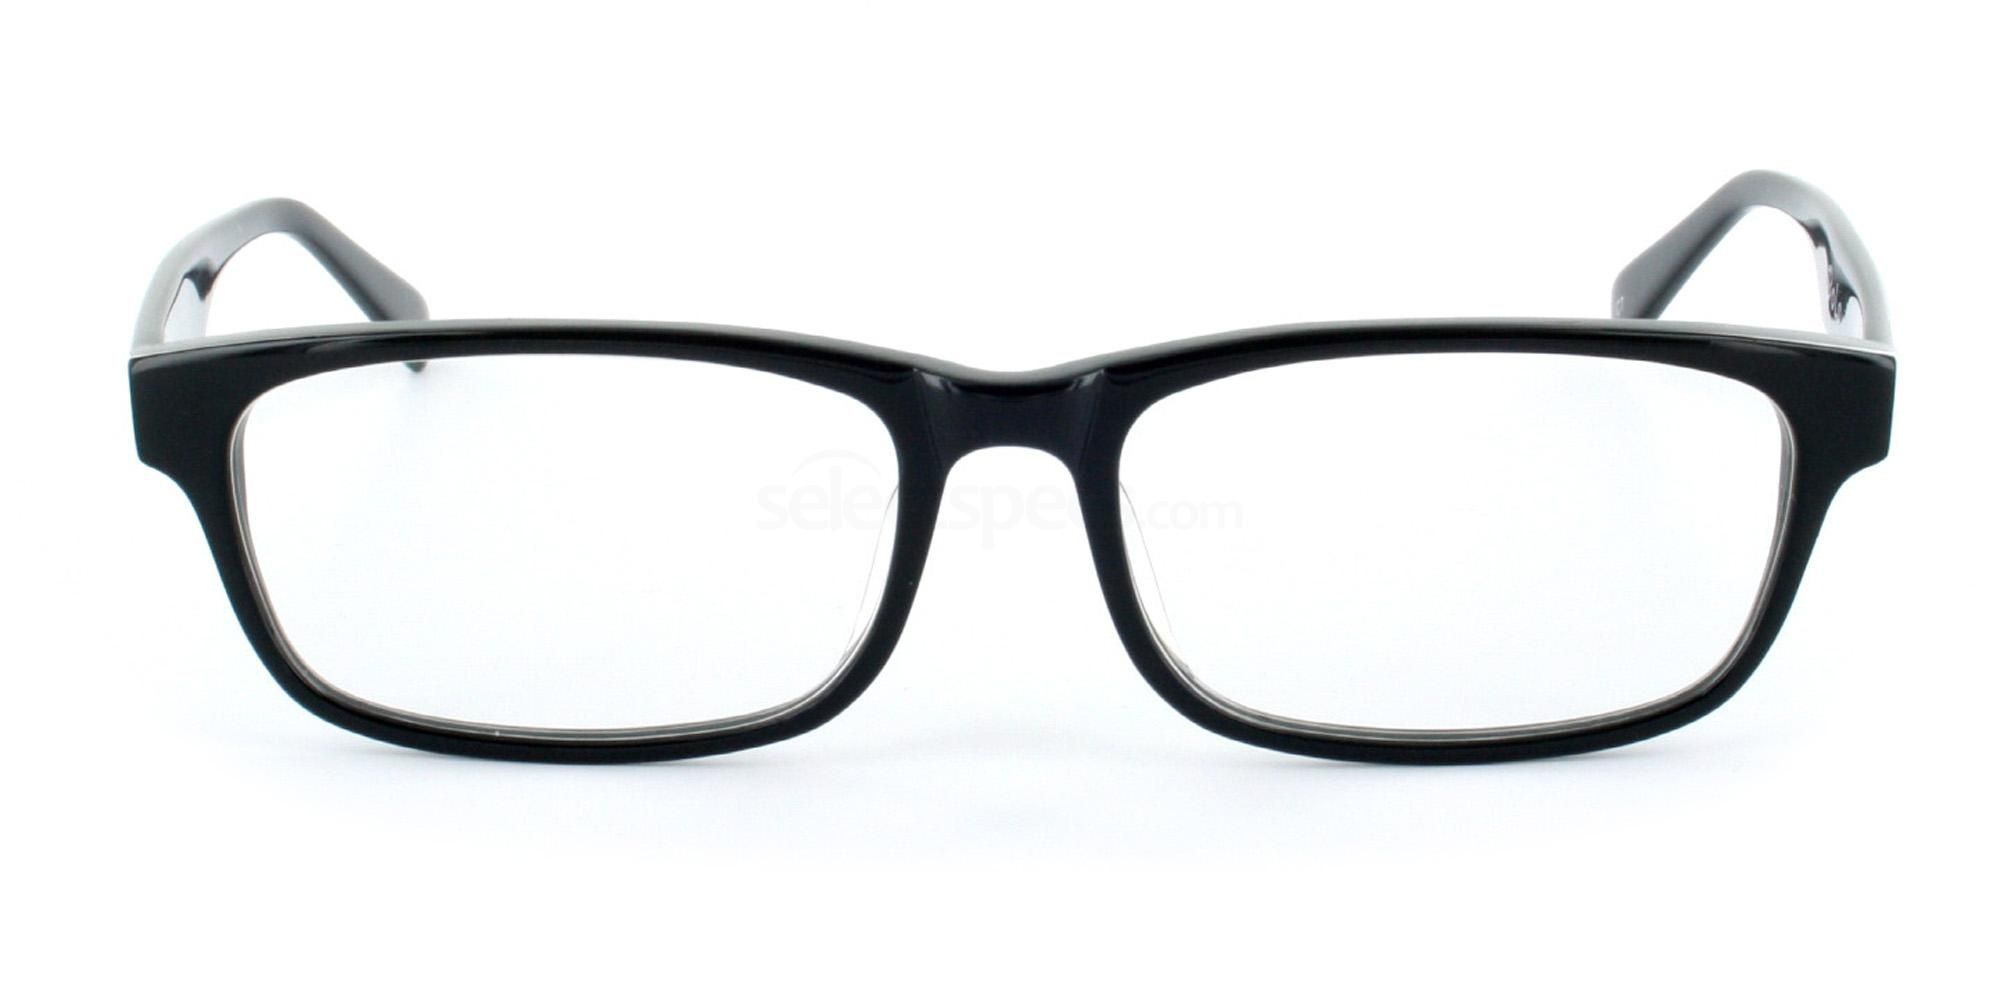 C7 HY81100 Glasses, Hallmark